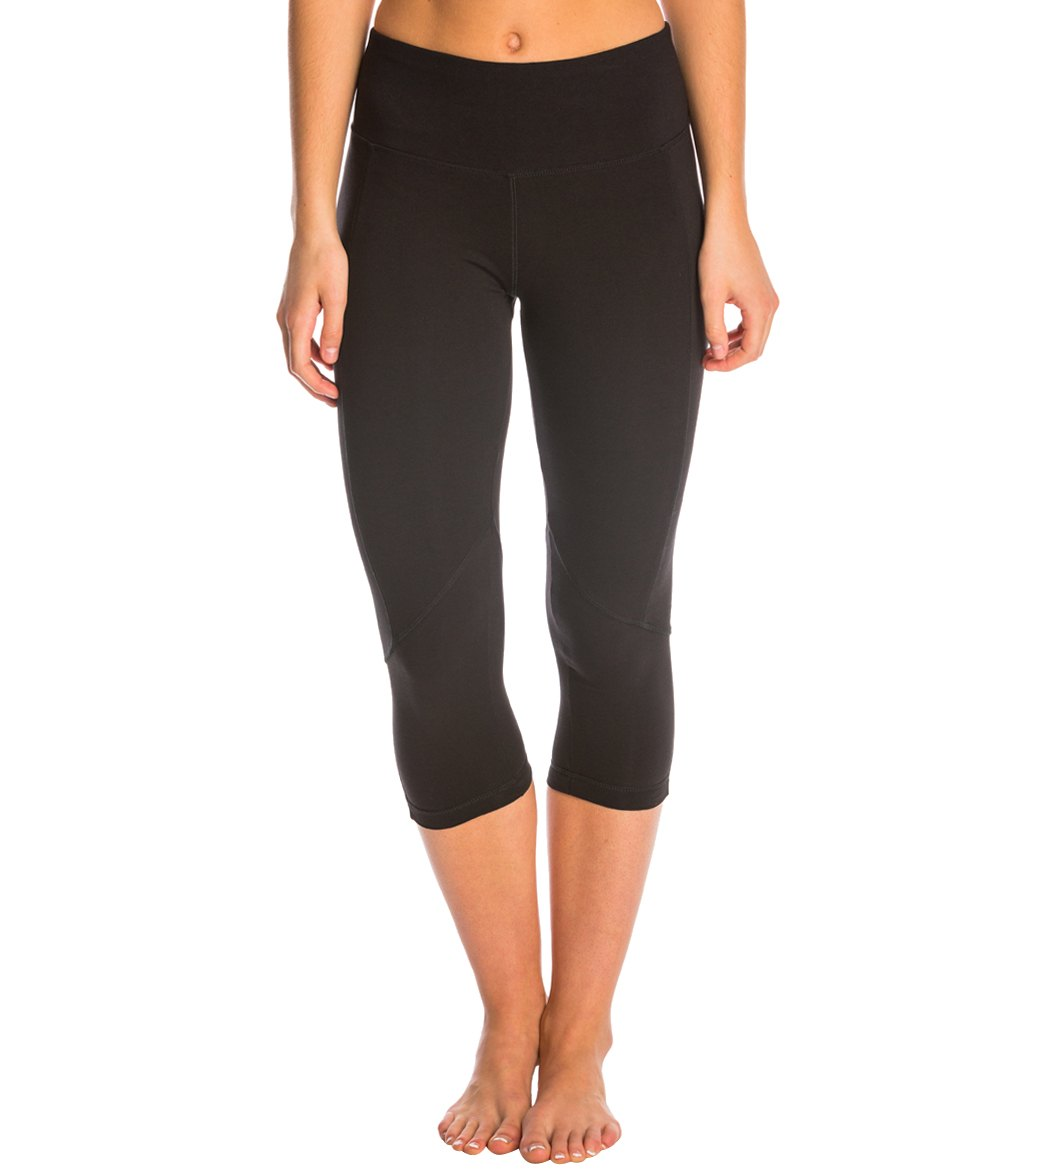 ed1c88ee9435fc Marika Carrie Ultimate Slimming Cotton Yoga Capris at YogaOutlet.com ...